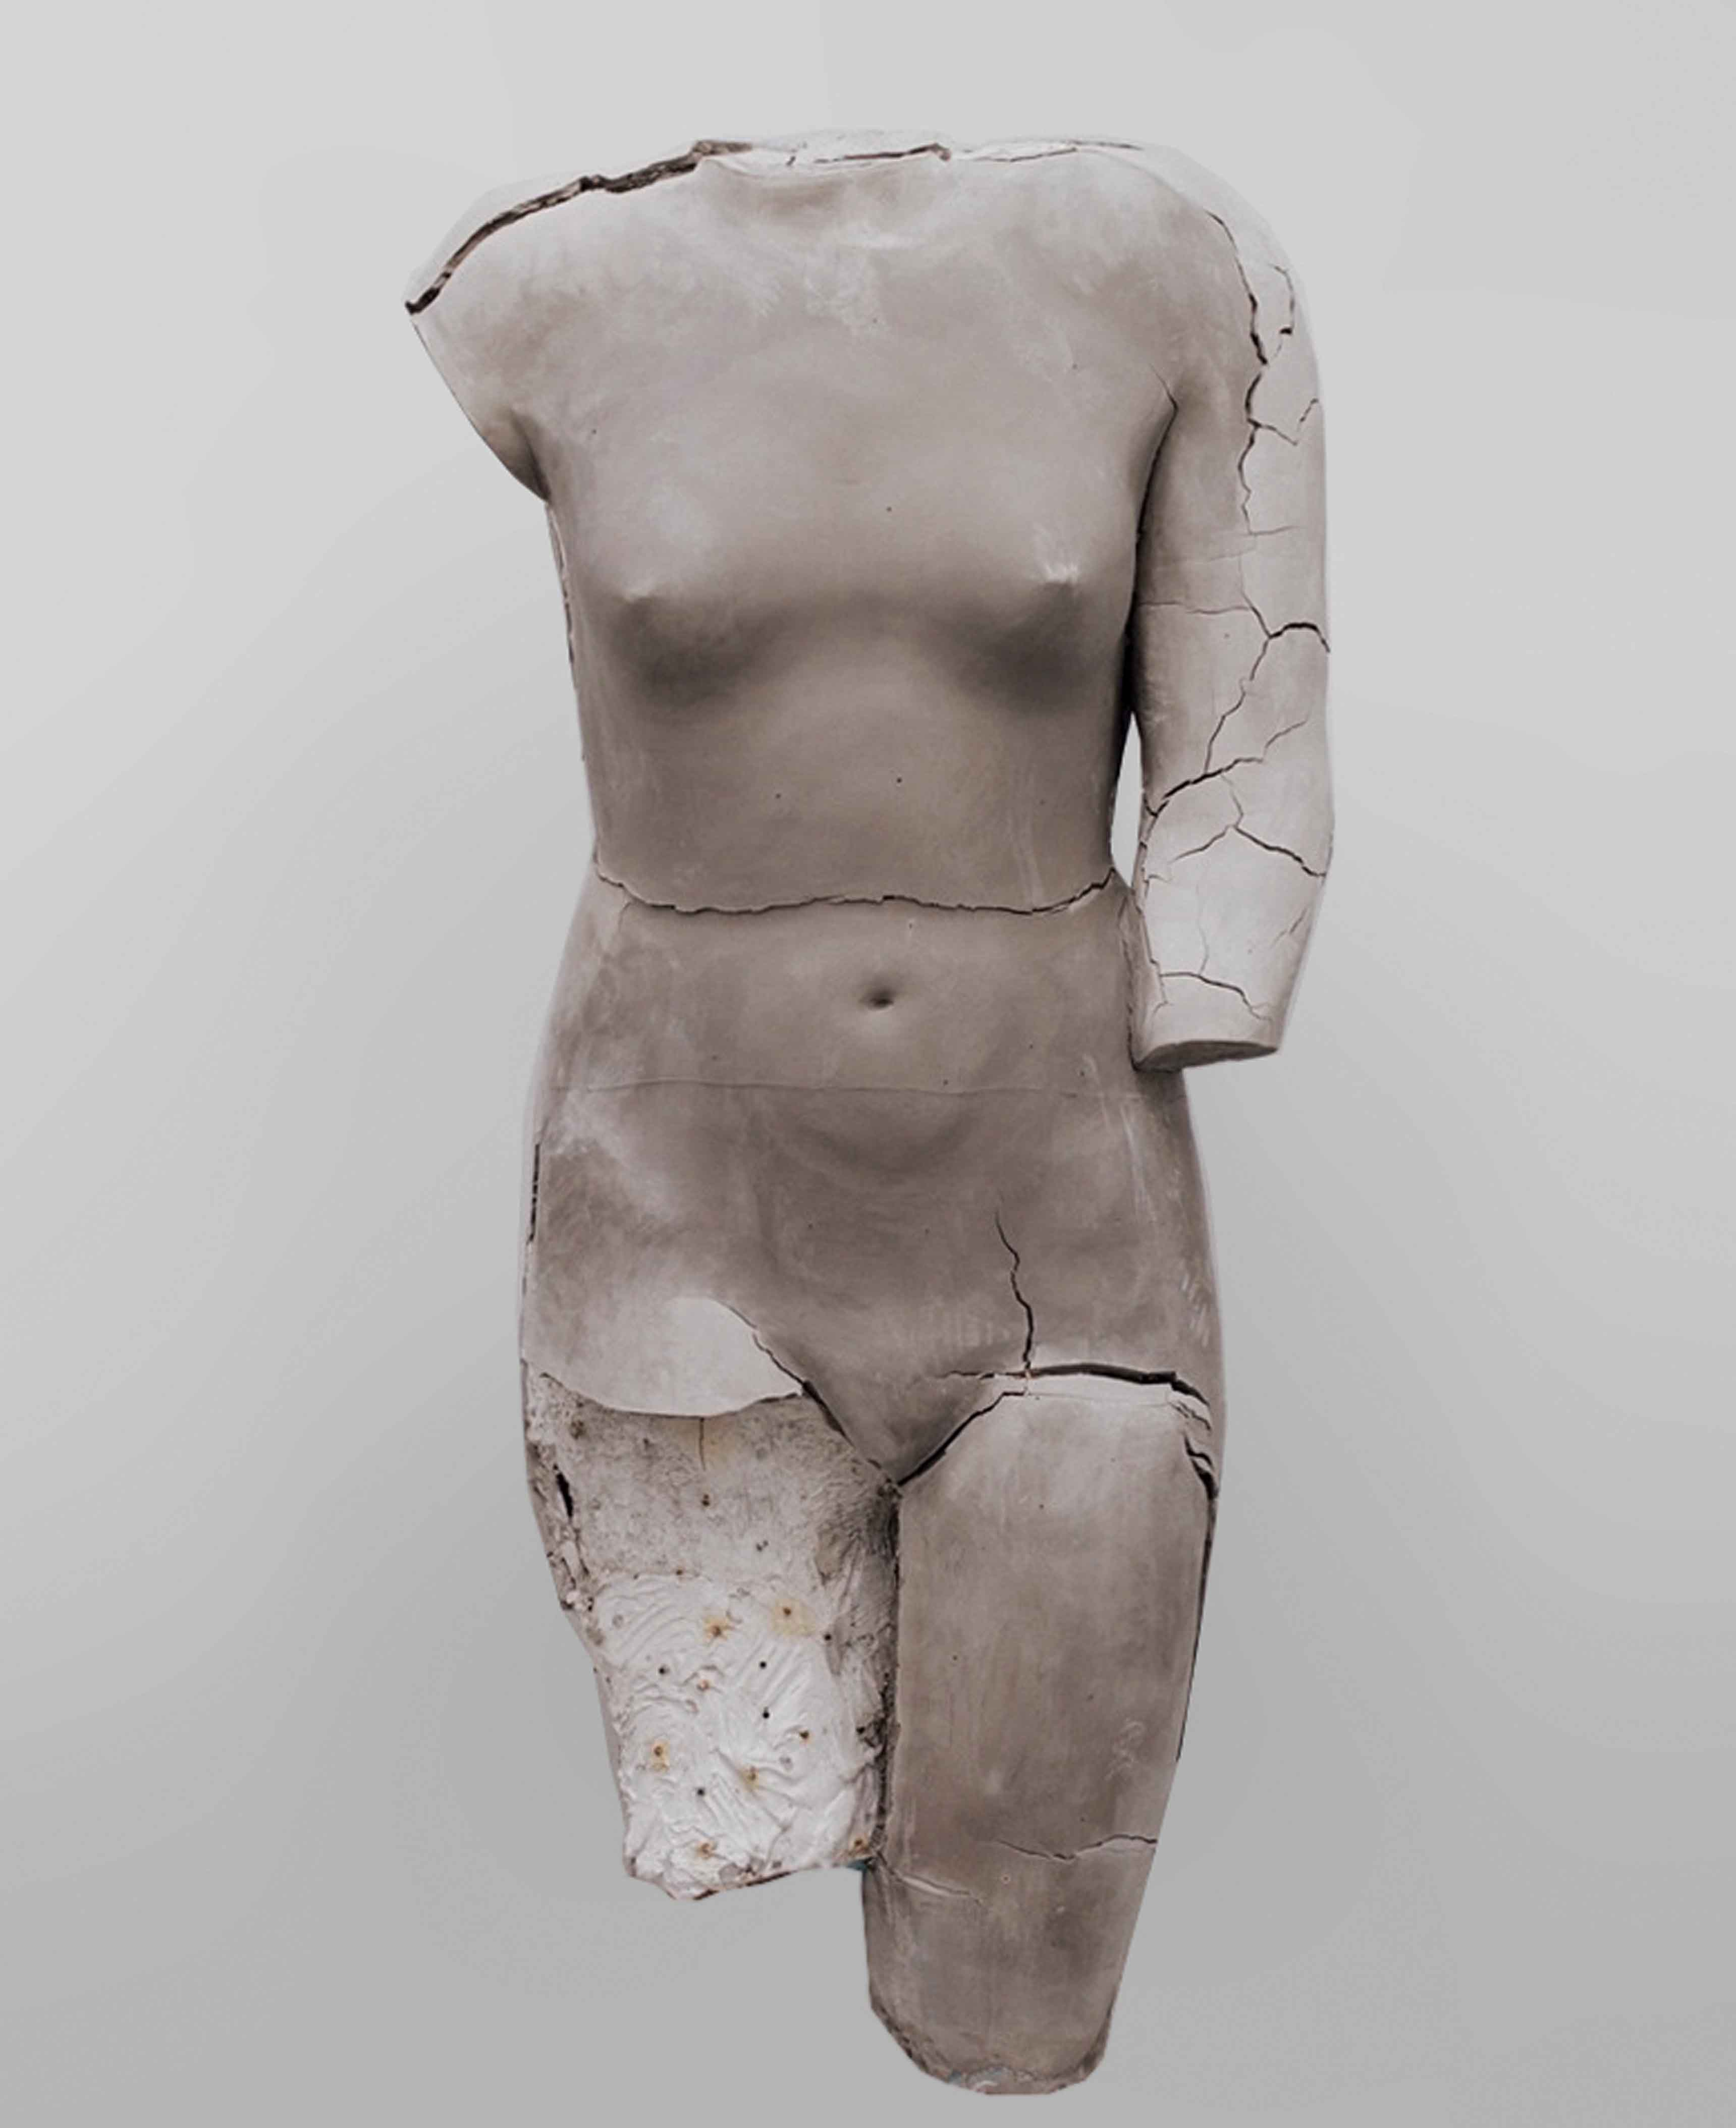 untitled (gray body) 2017 digital c-print with diasec 90 x 70 in (228.6 x 177,8 cm) © Vanessa Beecroft, 2017